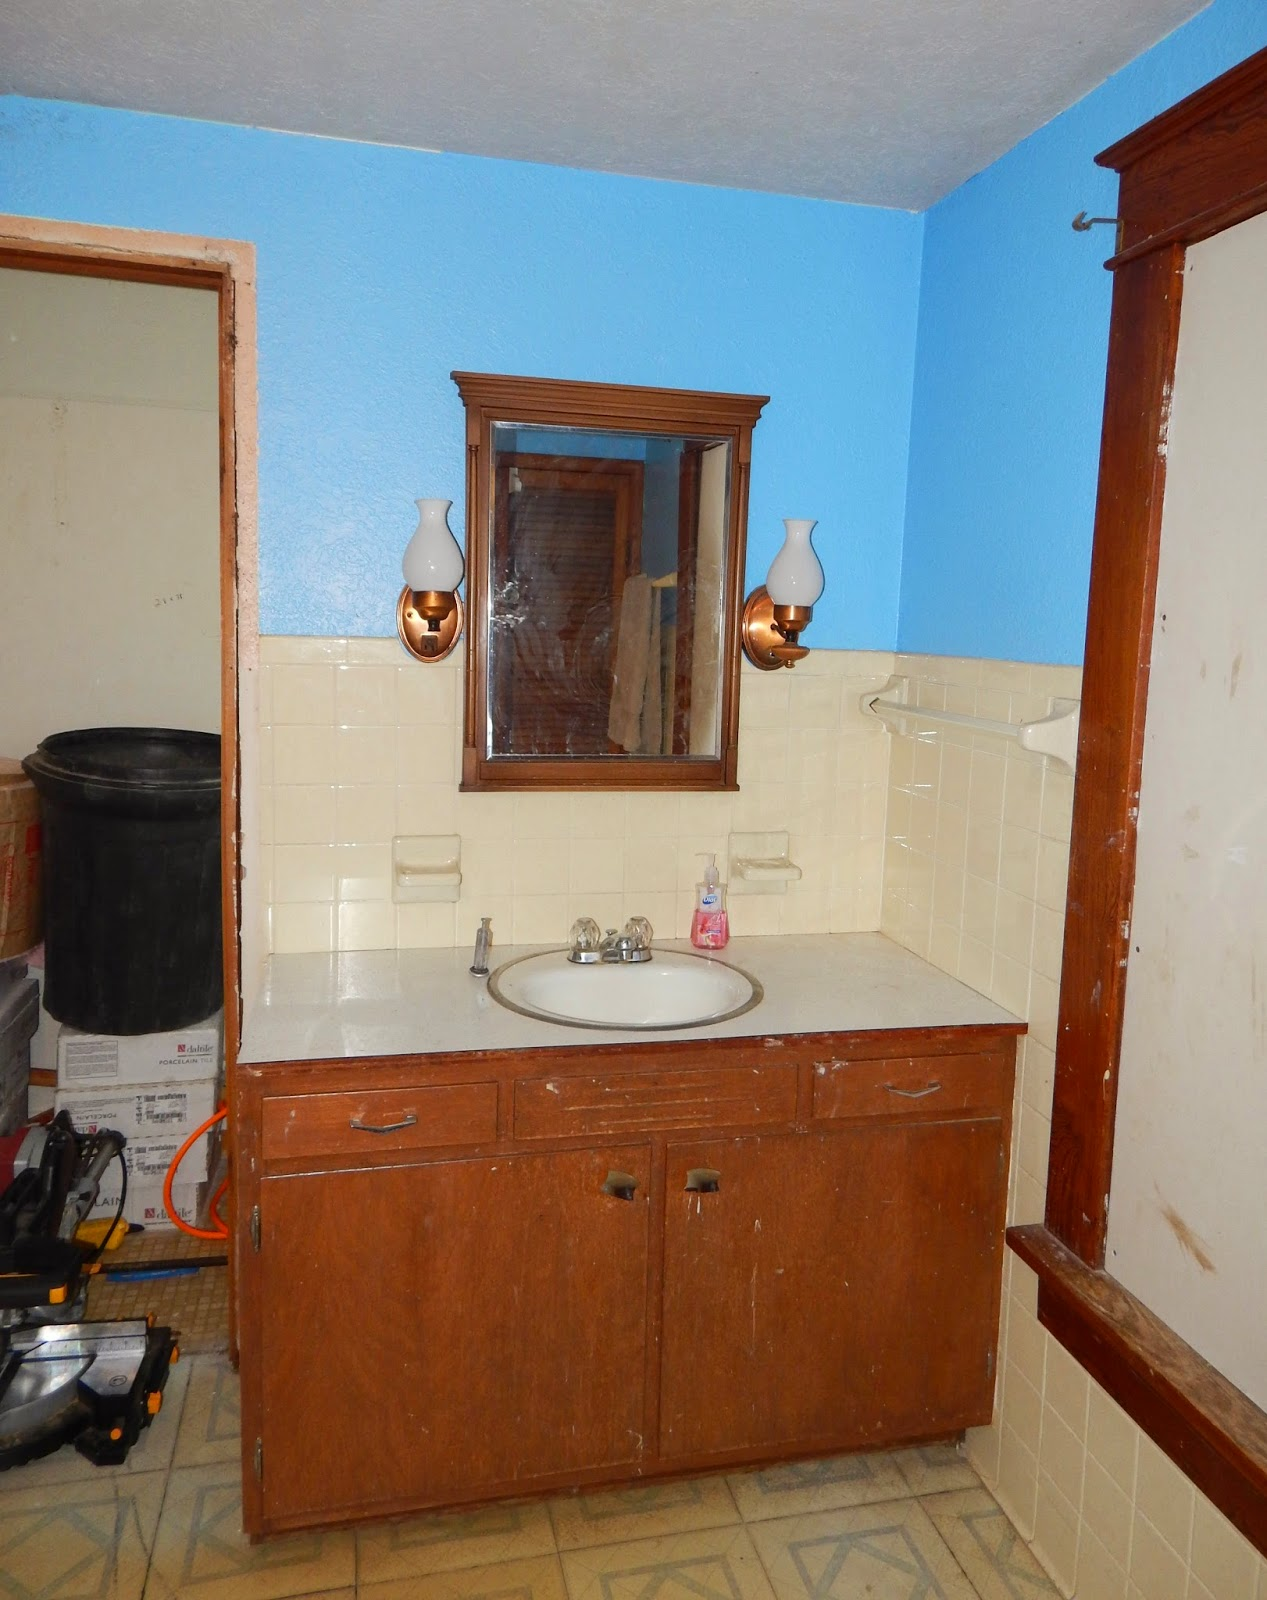 Behind The Vanity Was A Long Narrow Closet That Wasnt Functional We Tore Out That Wall And Replaced A Teeny Tiny Baby Storm Window With One More